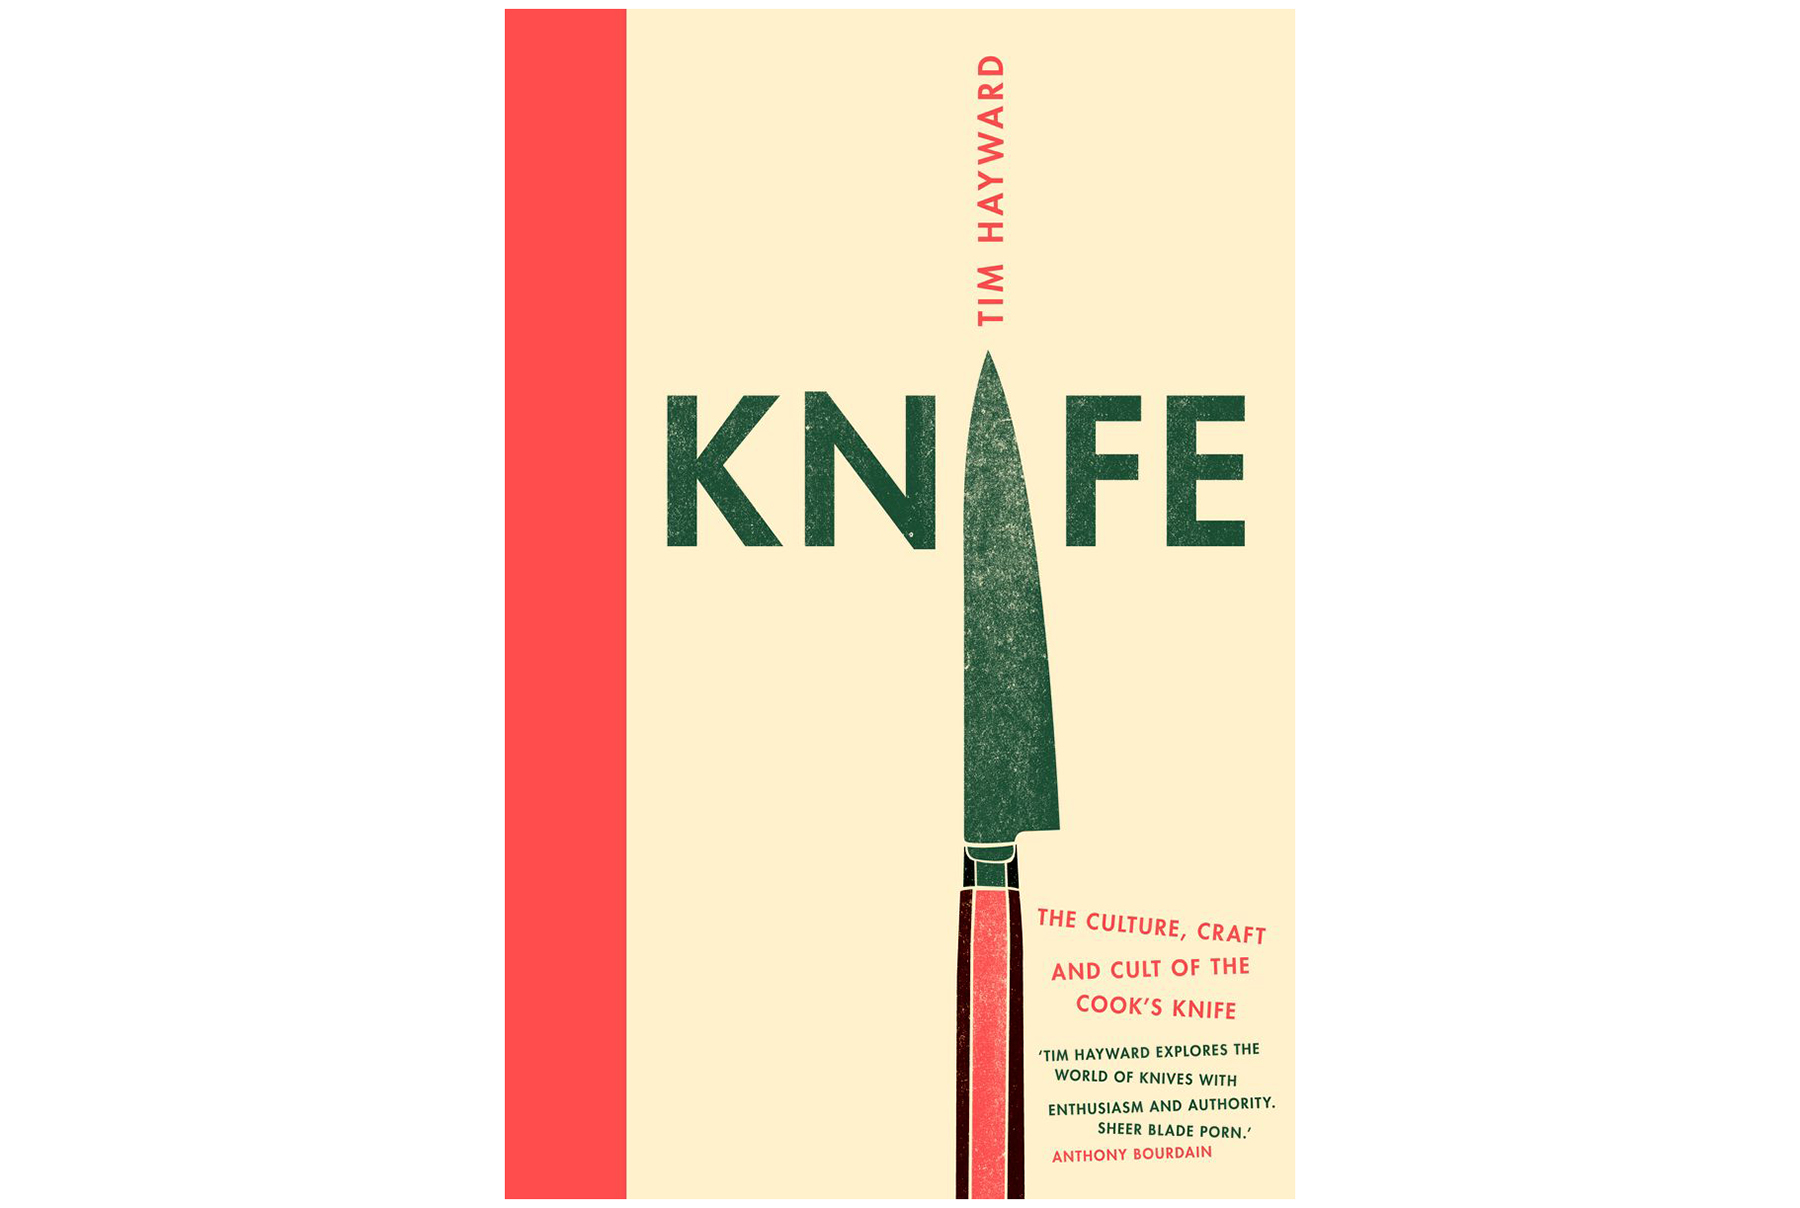 Knife, by Tim Hayward